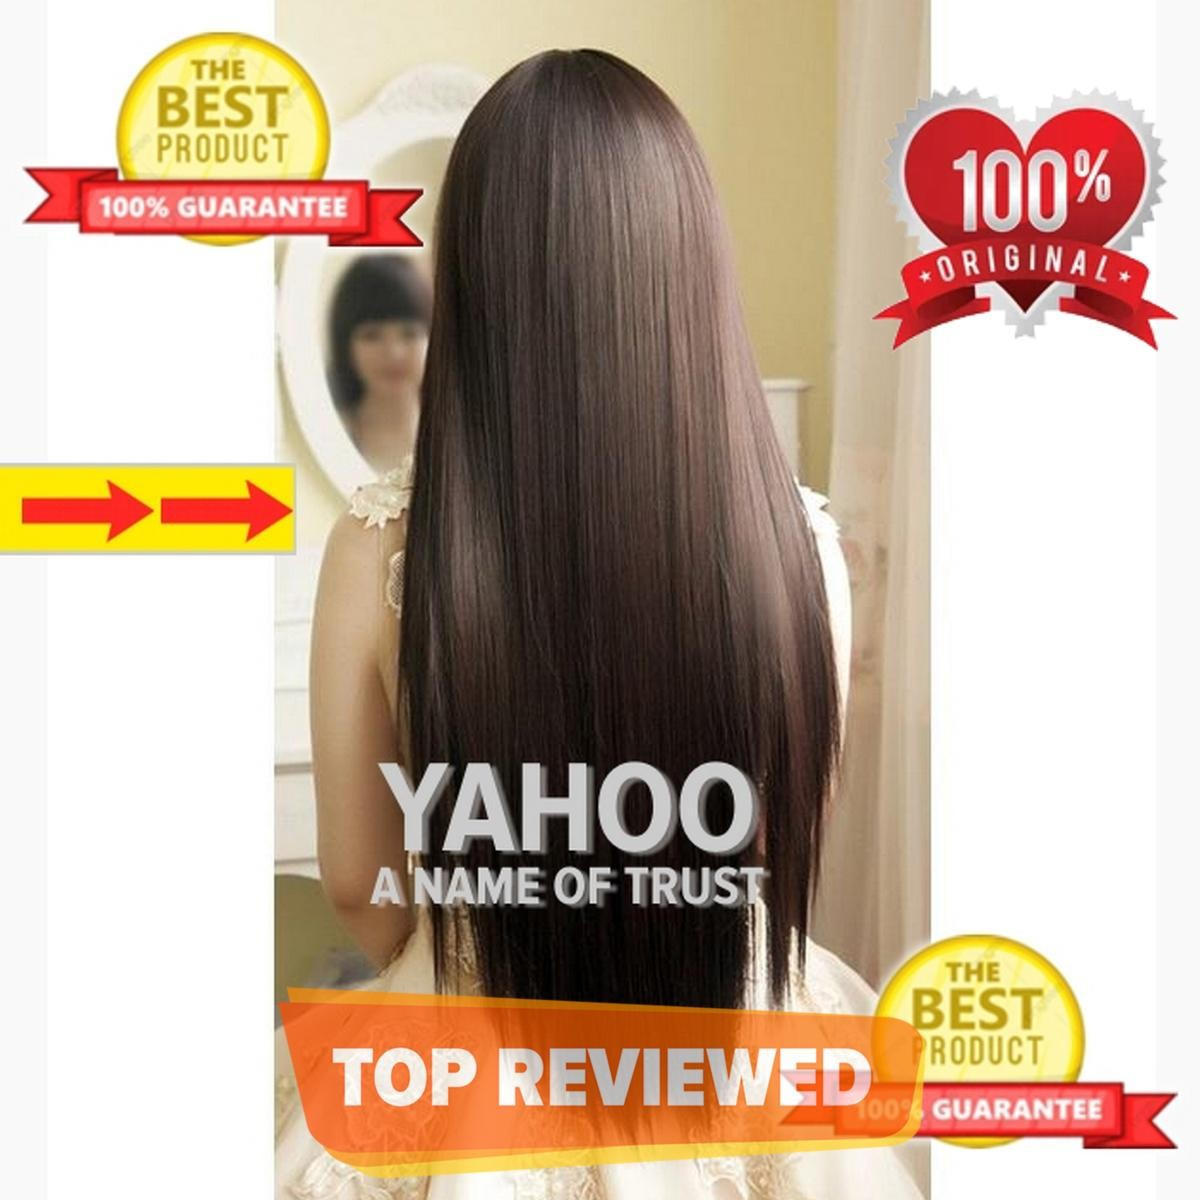 Brown Hair Extension Natural Brown 5 Clips In Full Volume 30 Long Straight Hair Extension - Natural Color - Perfect Match For All Hair Types